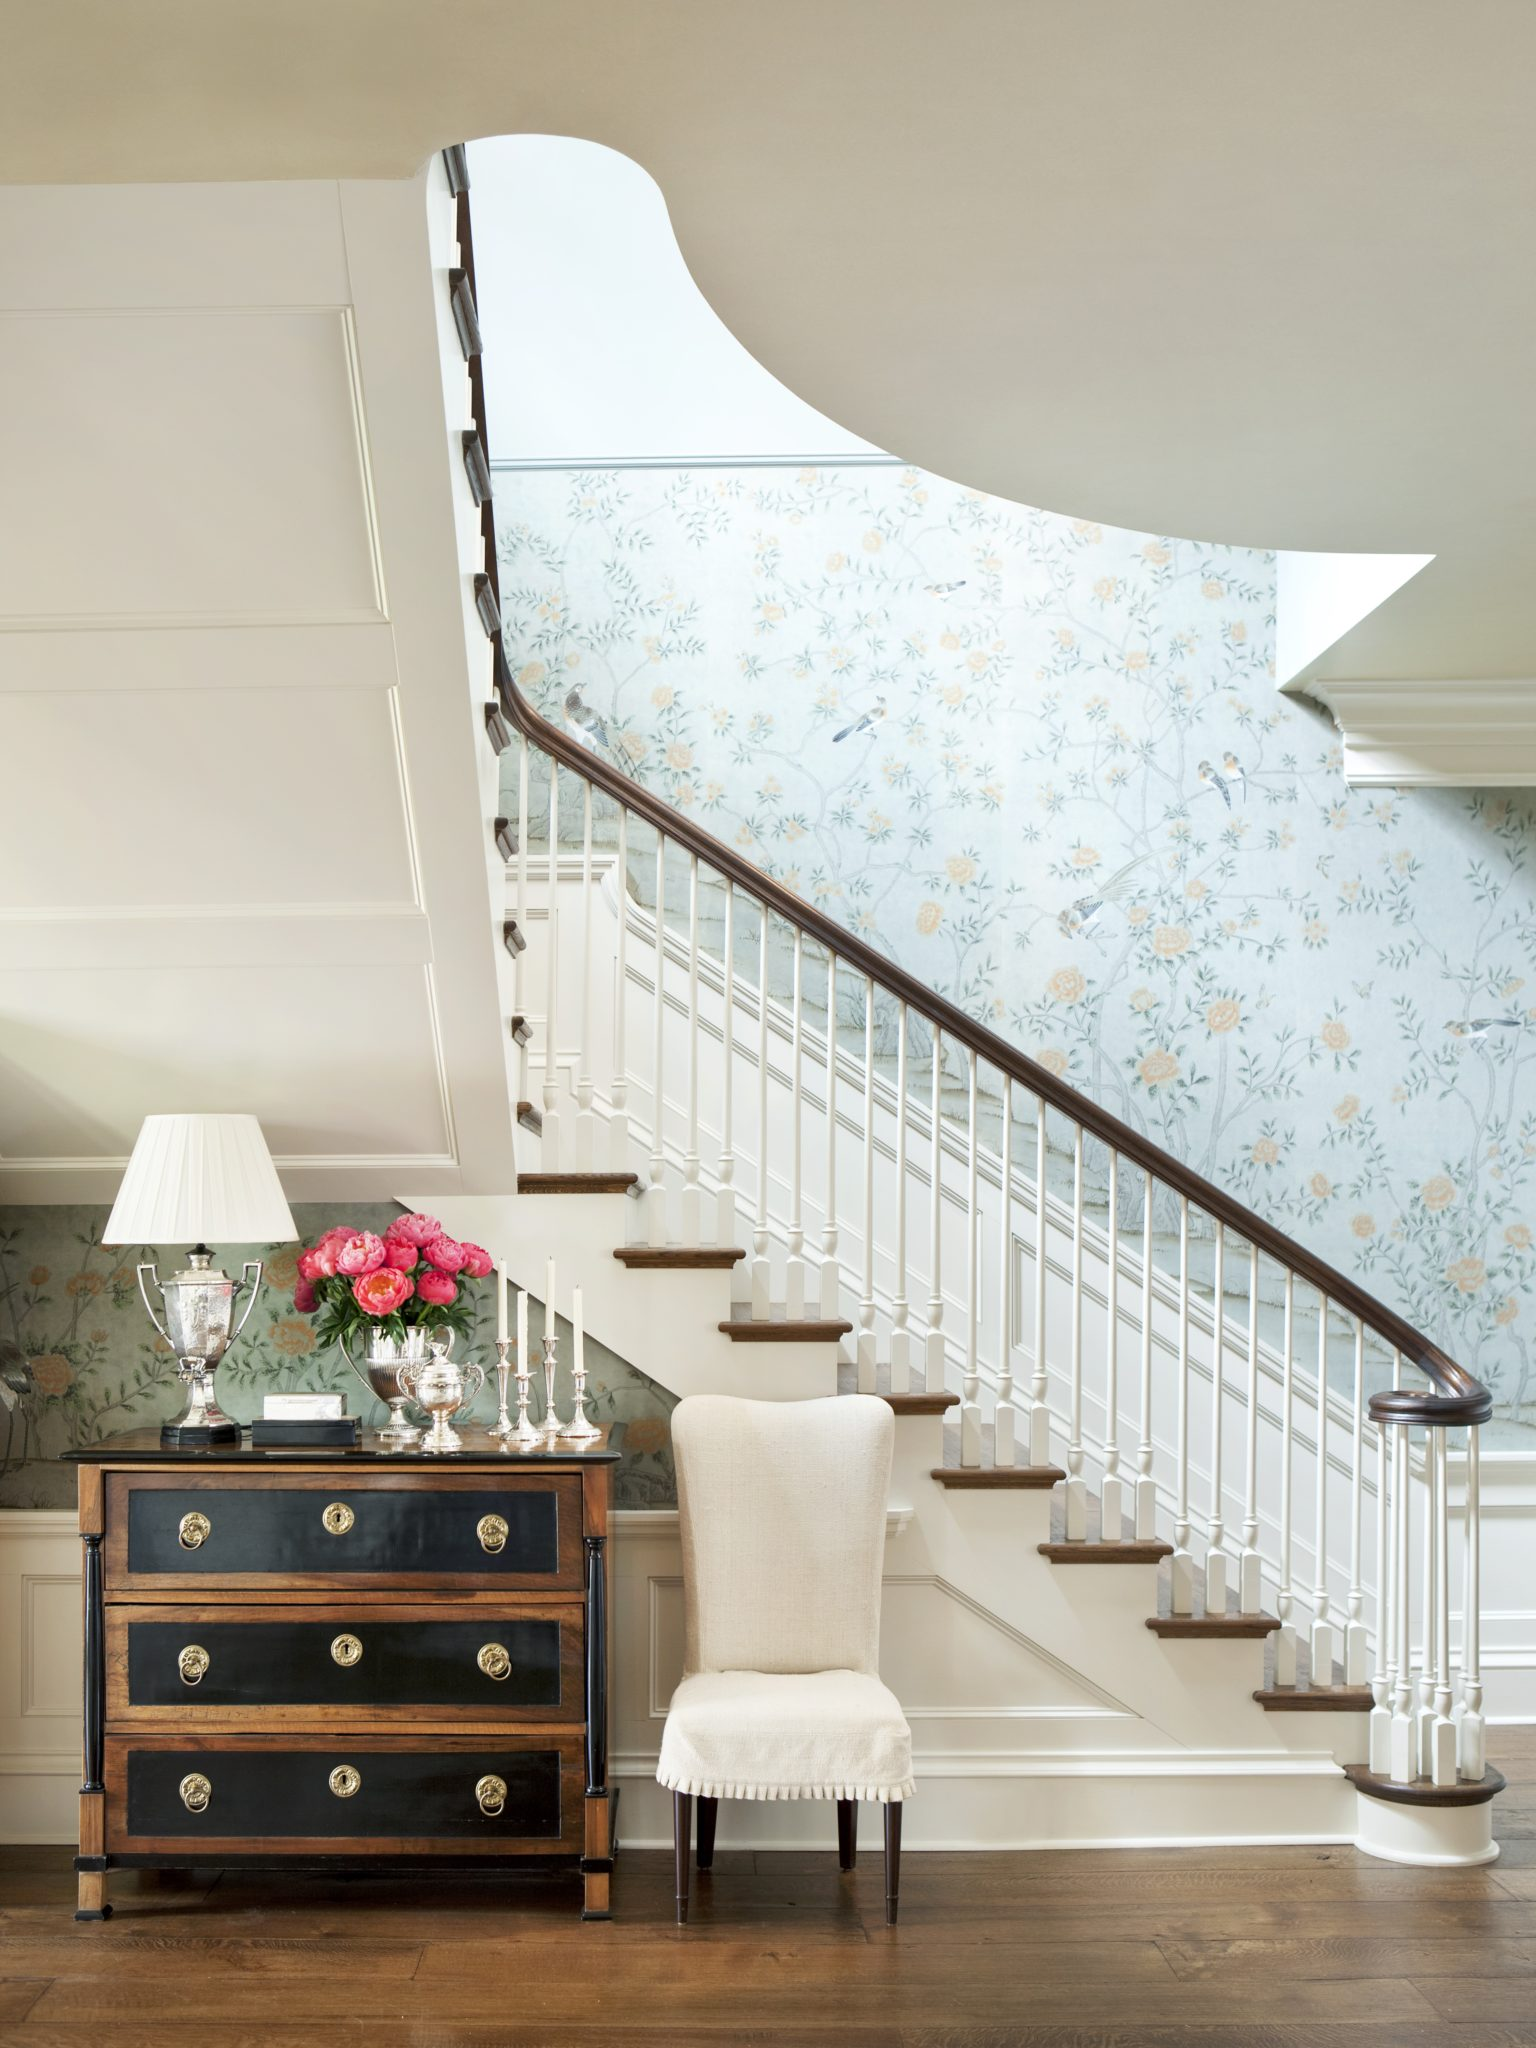 Relaxed foyer and staircase with blue floral wallpaper by Suzanne Kasler Interiors